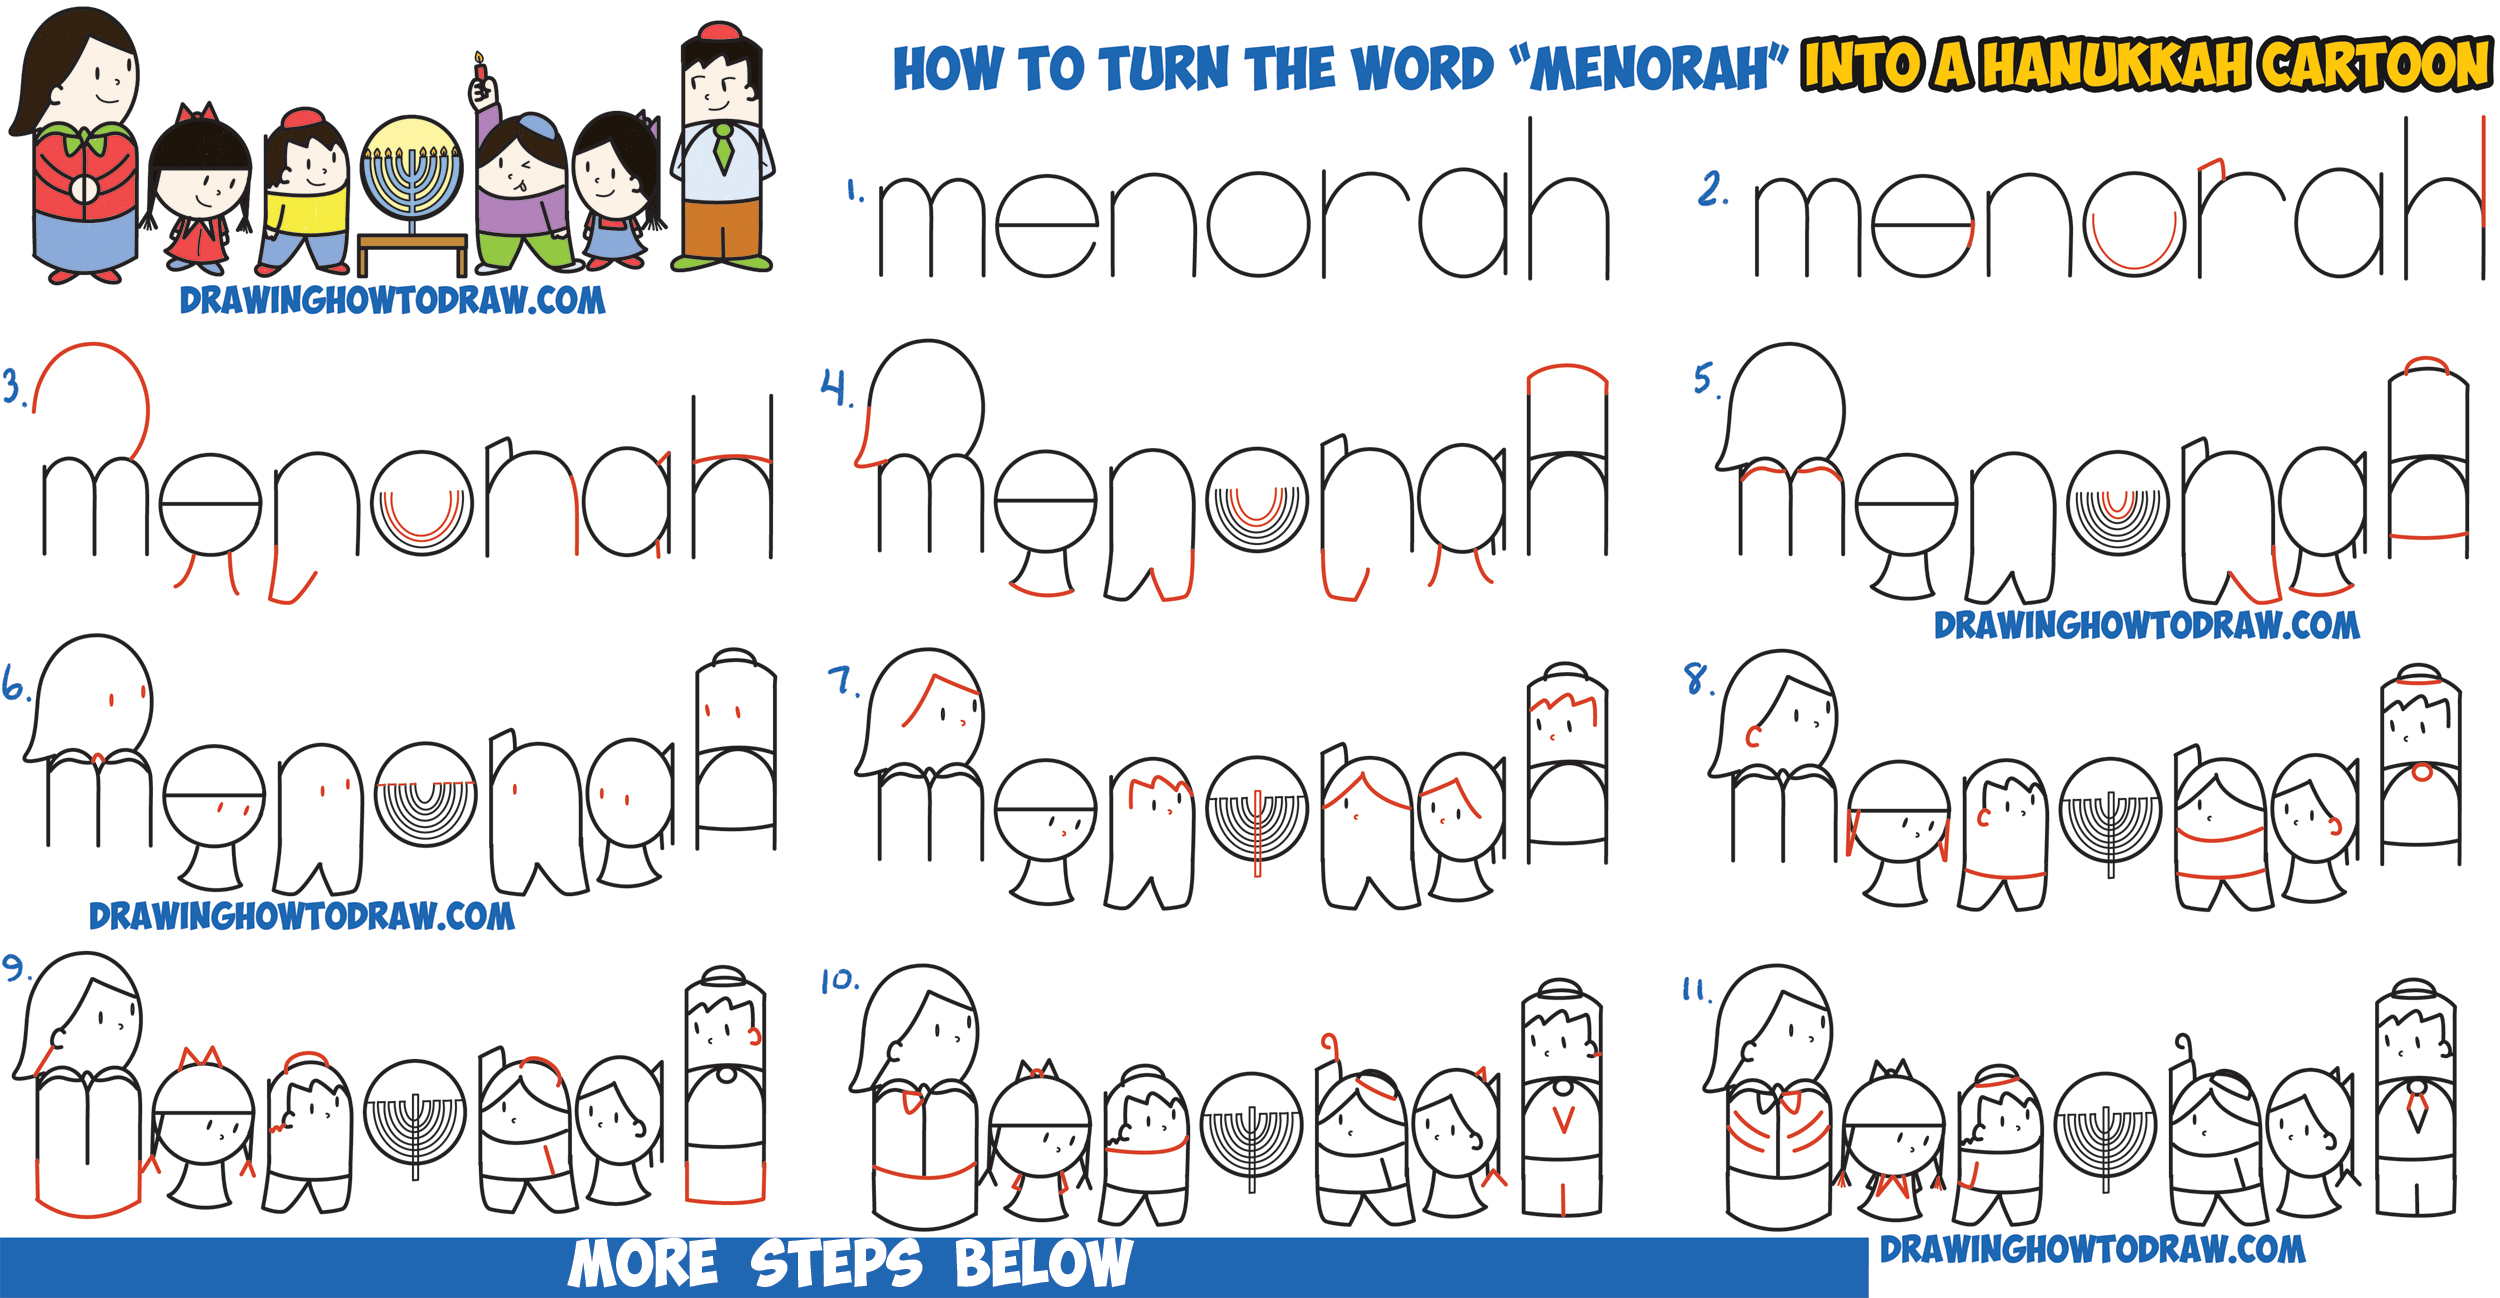 How to Draw Cartoon Jewish Kids Lighting a Menorah for Hanukkah / Chanukah Word Cartoon Easy Step by Step Drawing Tutorial